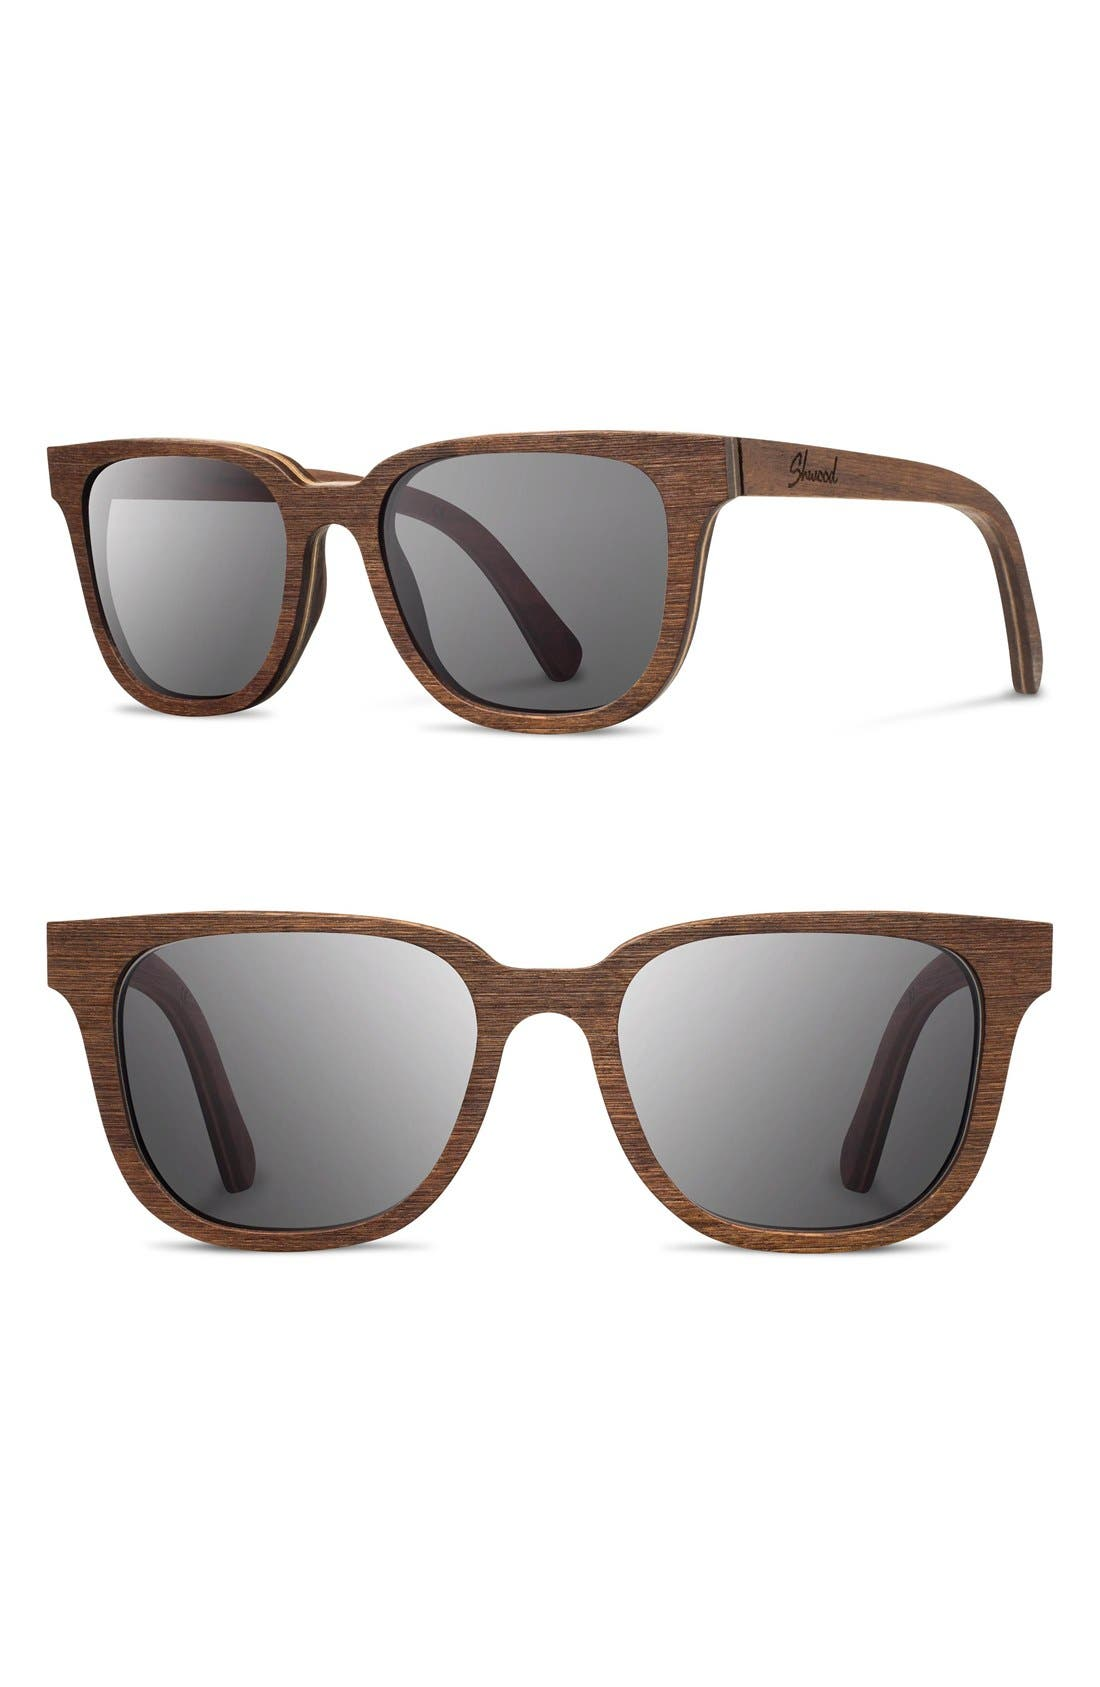 Shwood 'Prescott' 52mm Wood Sunglasses